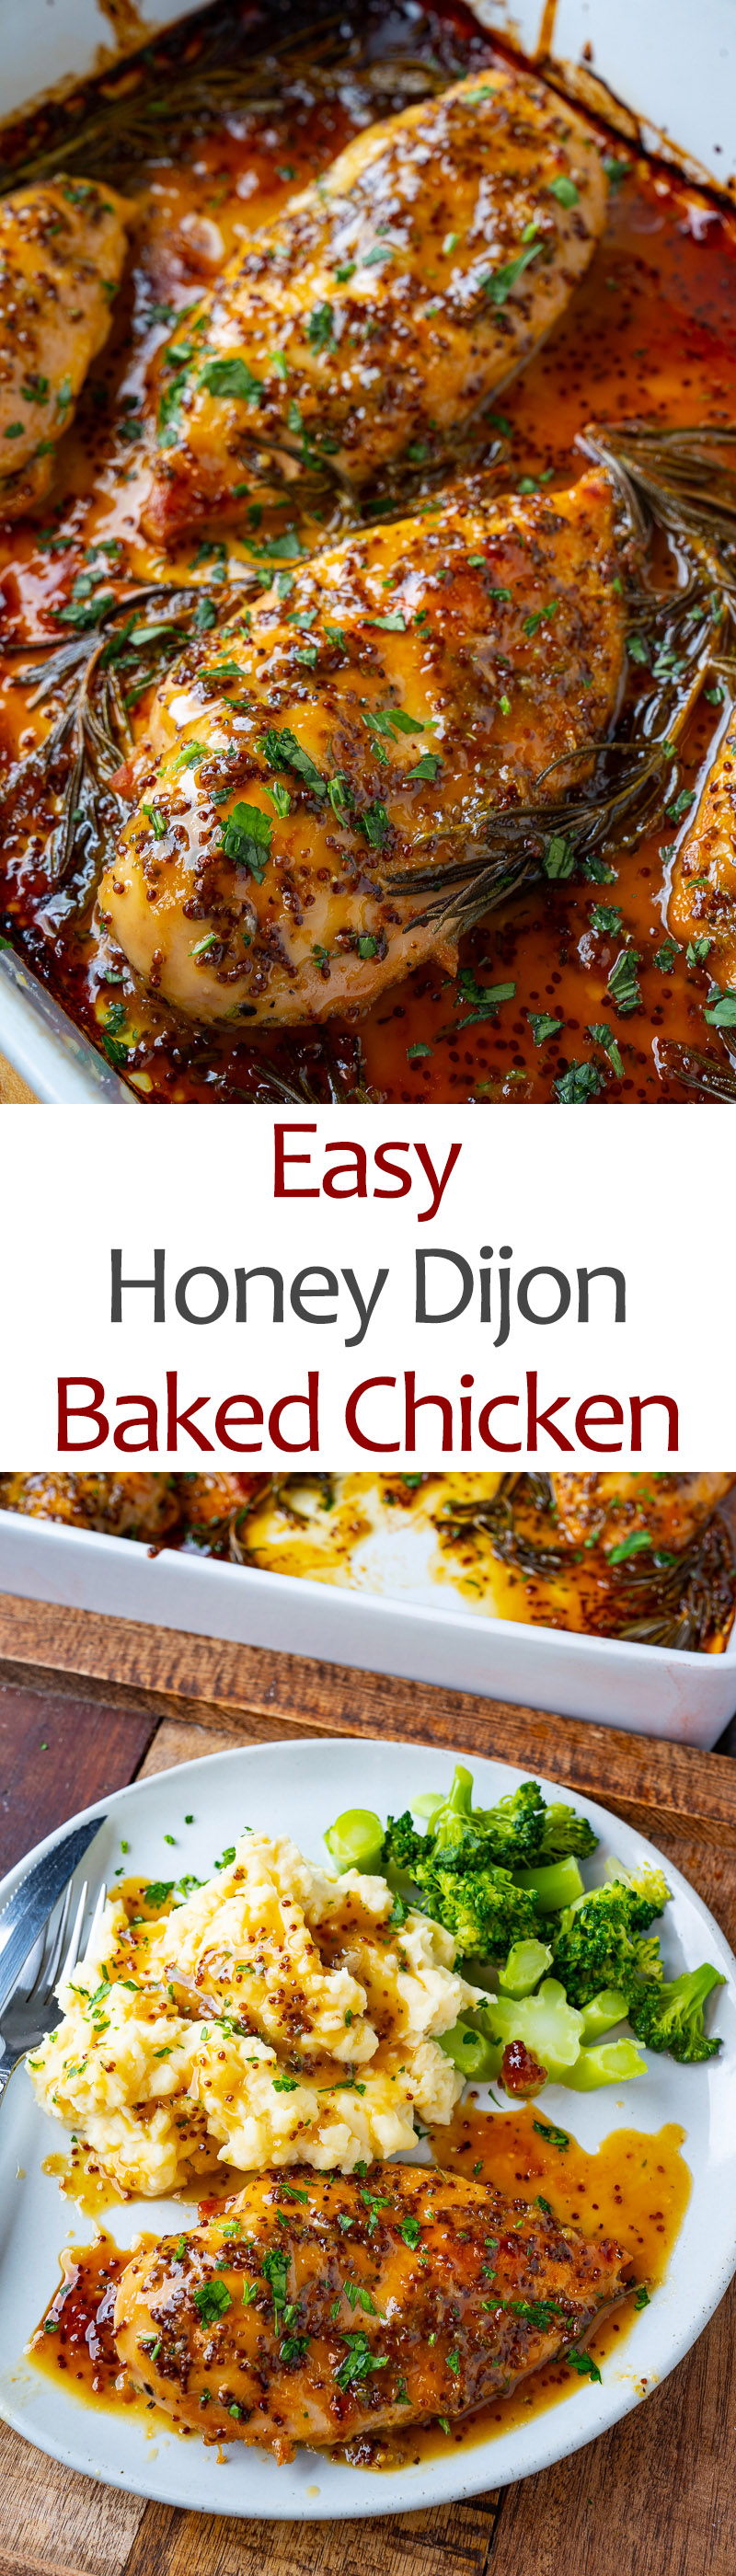 Easy Baked Honey Dijon Chicken